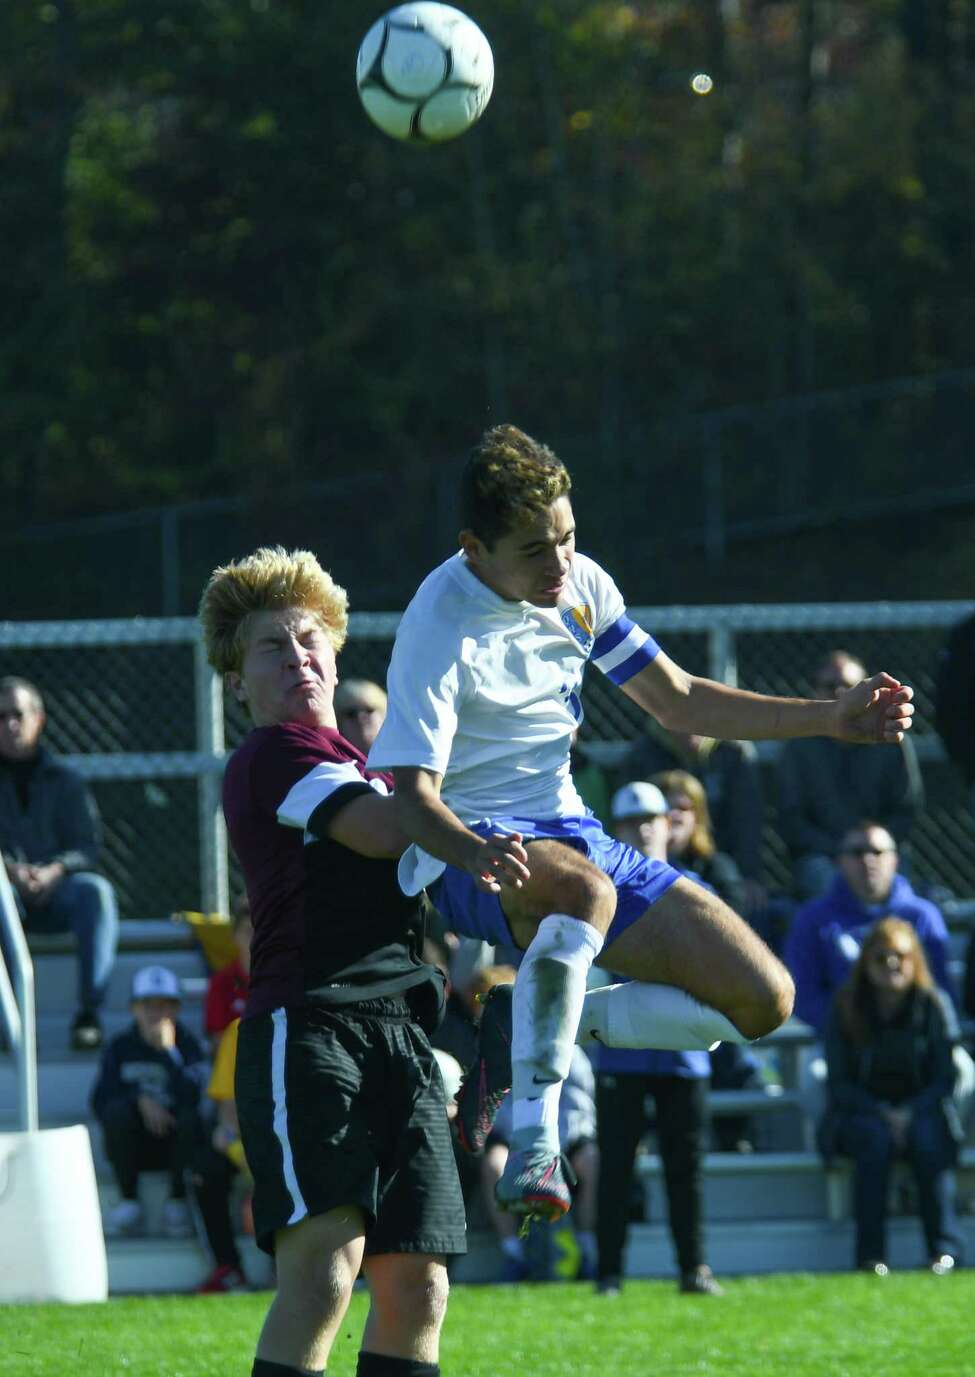 Burnt Hills' Robert Forlano reacts as Queensbury's Greg Maccharulo jumps to head the ball during the Class A boys soccer section II final on Saturday in Colonie. (Jenn March/Special to the Times Union)